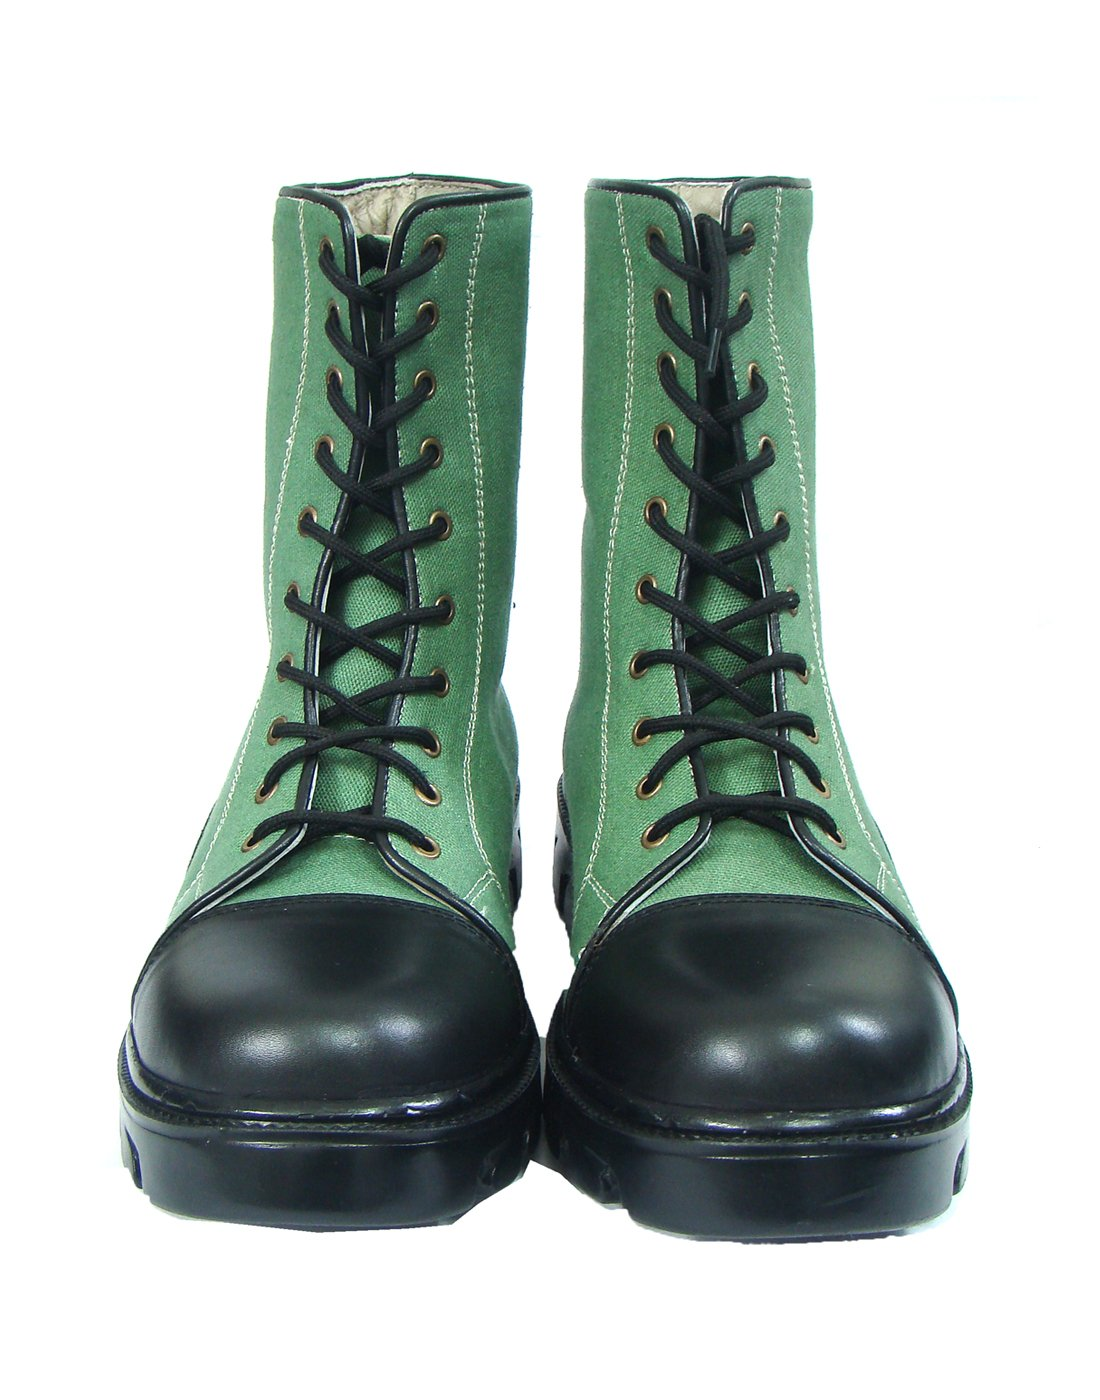 Asm Green Jungle Boots With PU Sole & Soft Leather Insoles, Fully Soft Leather Lining and PU Foot Pad For Optimum Comfort For Men. Article 604 (6)